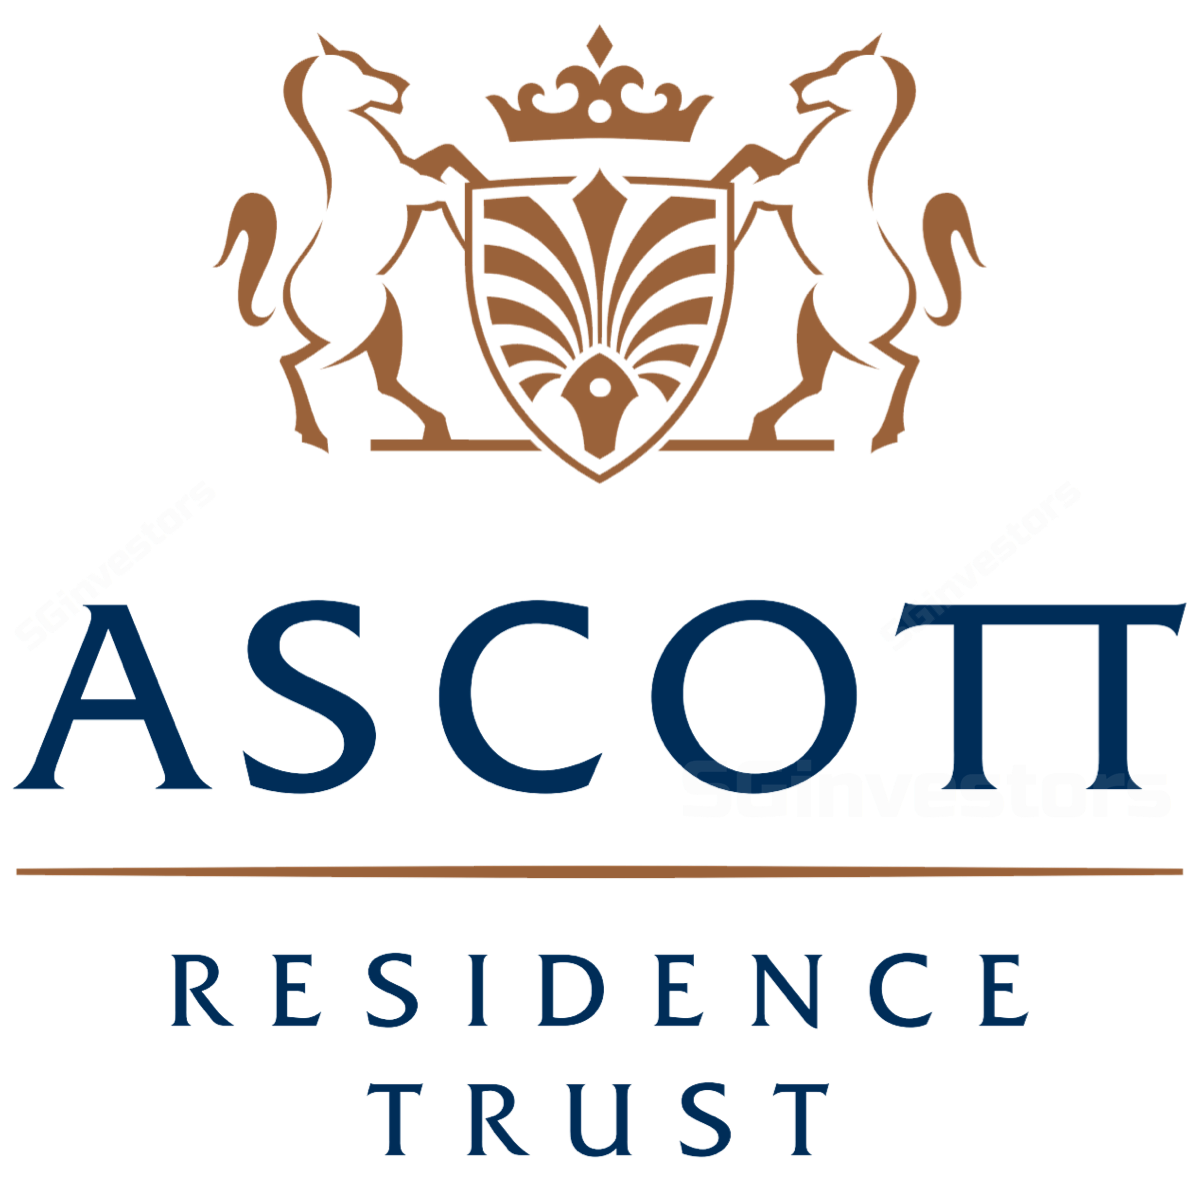 Ascott Residence Trust (ART SP) - UOB Kay Hian 2017-06-01: Third Bite Of The Big Apple